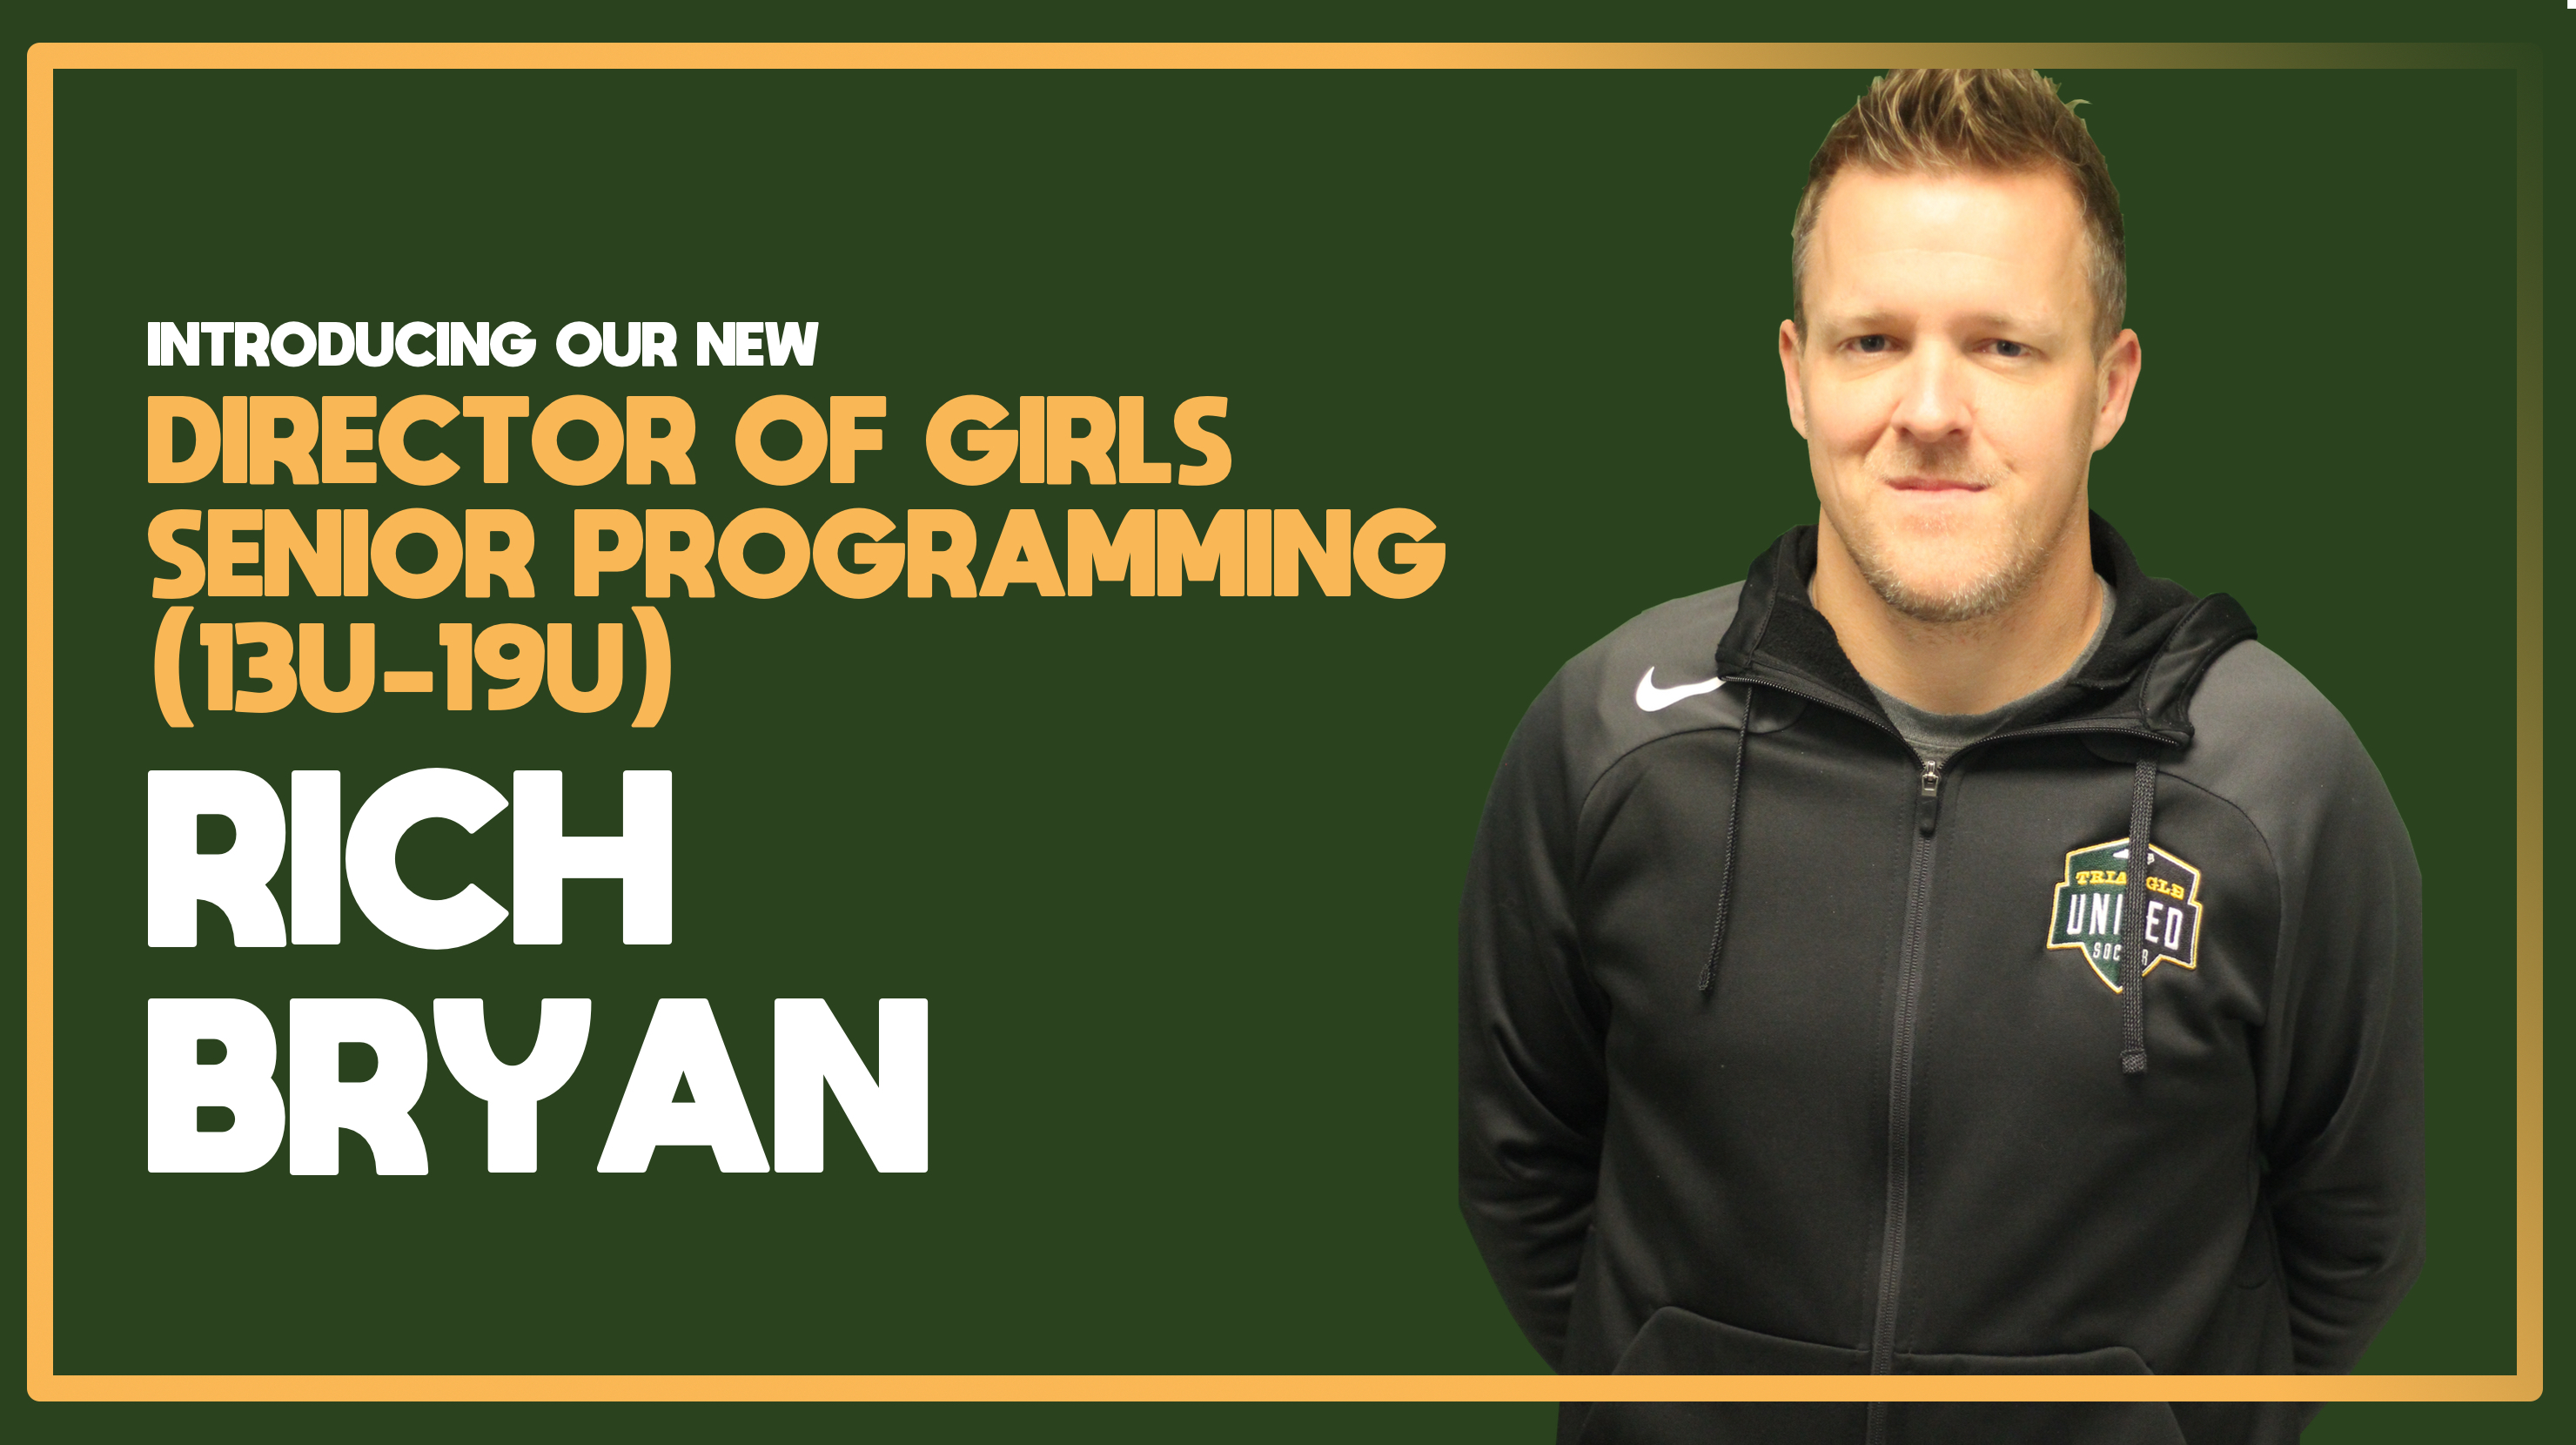 New Director of Girls Senior Programming